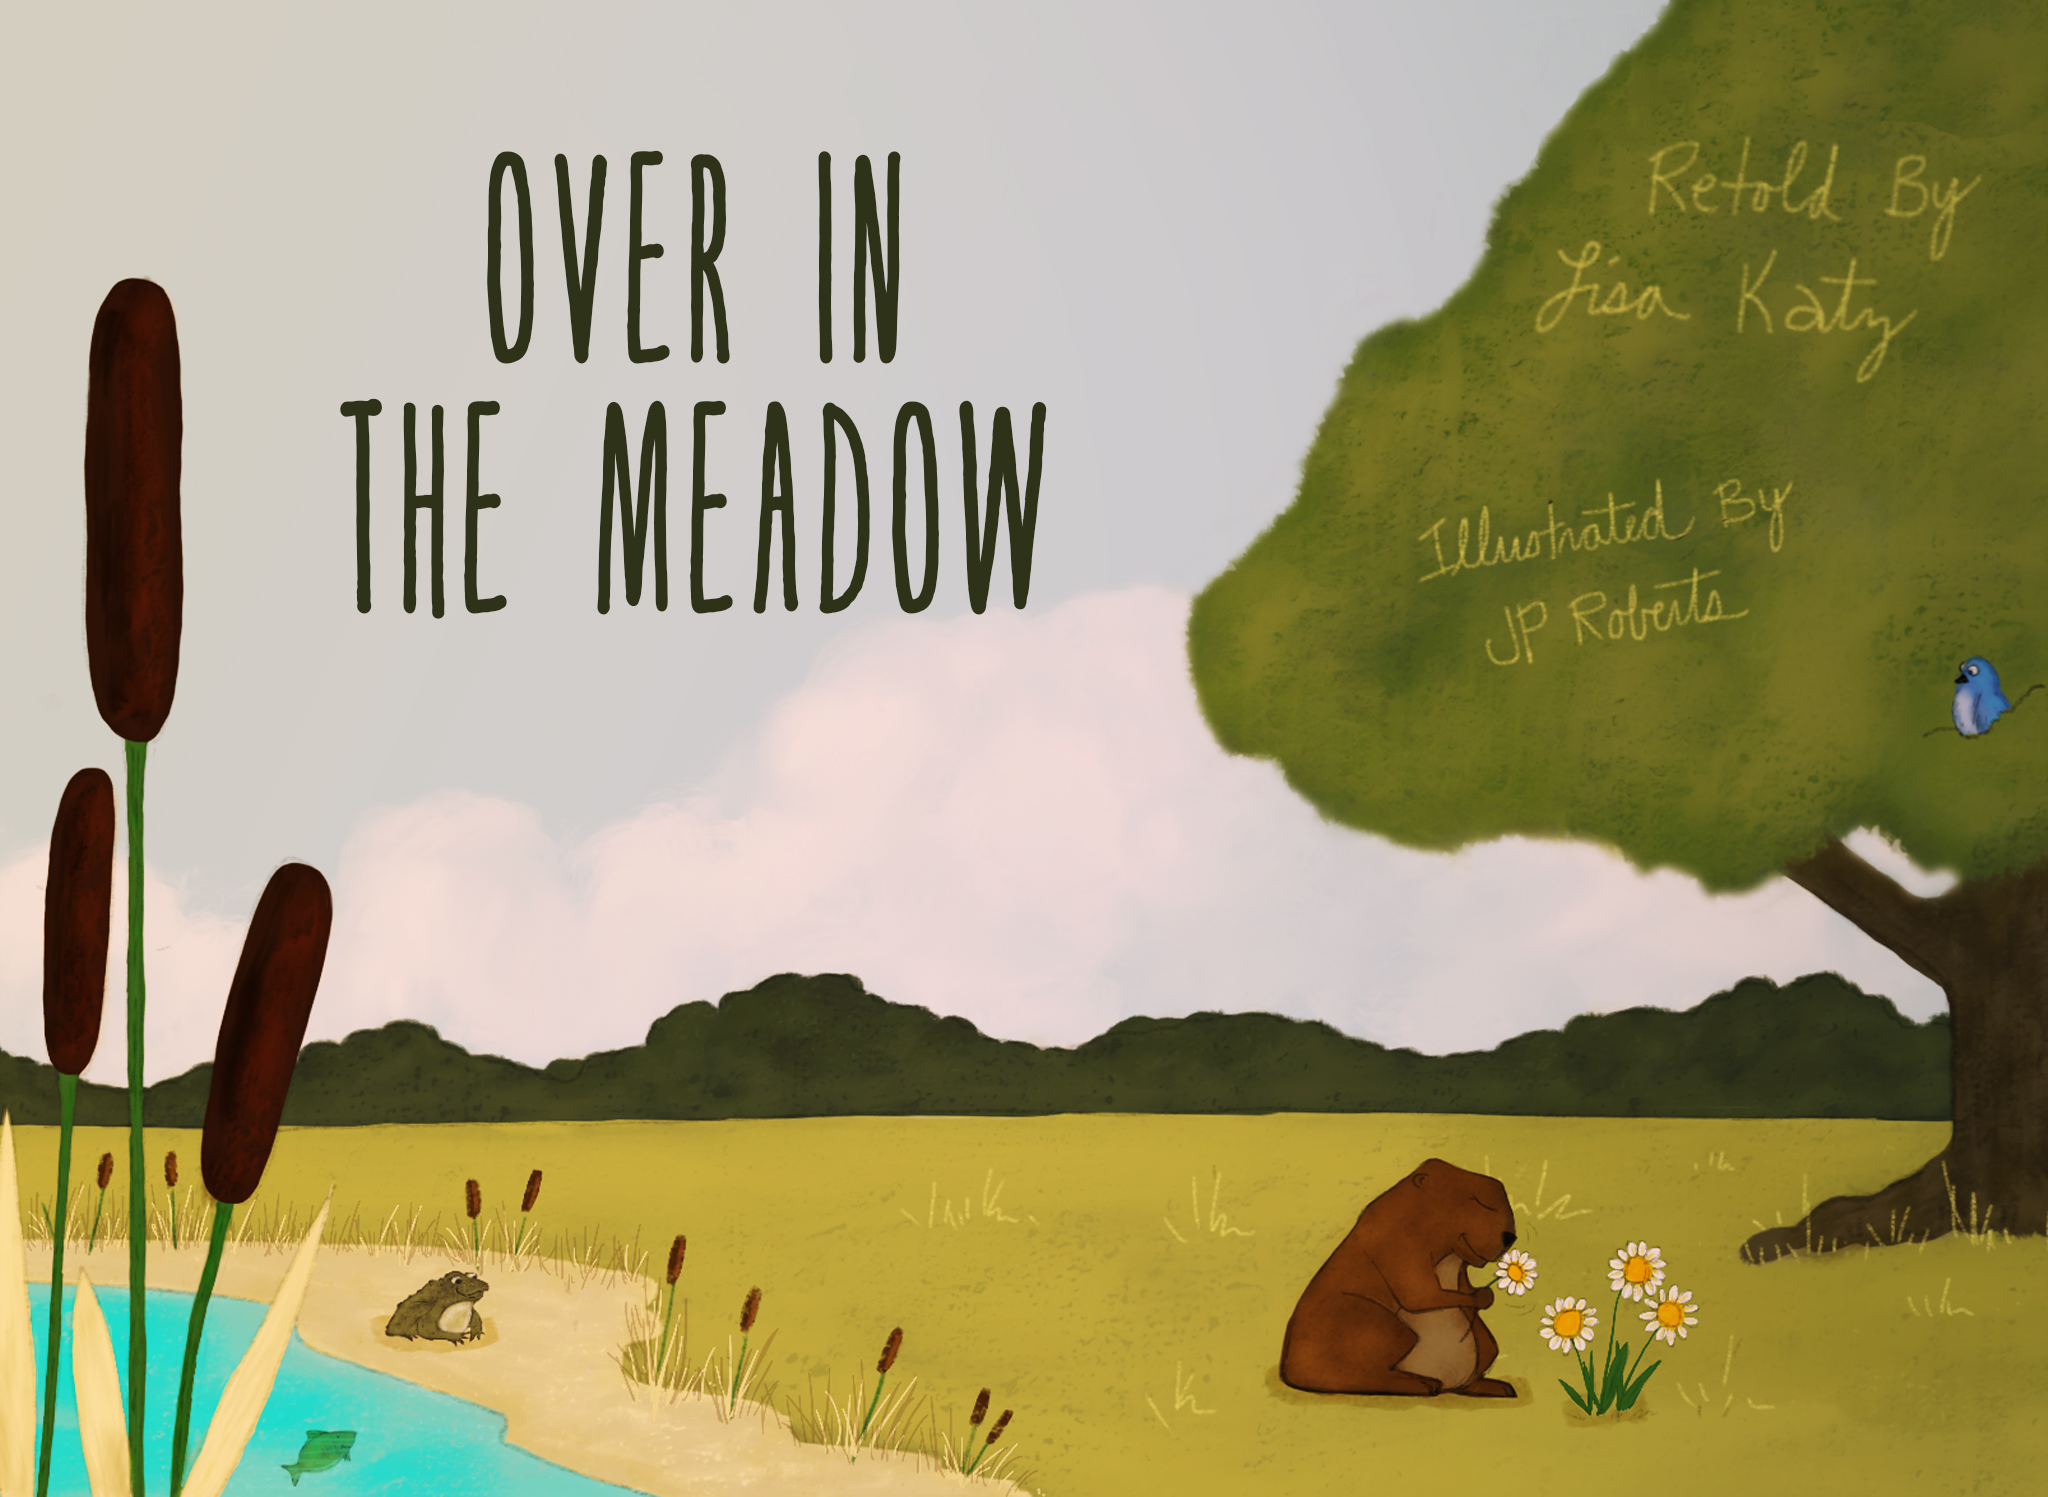 OverInTheMeadow_JPRoberts.jpg